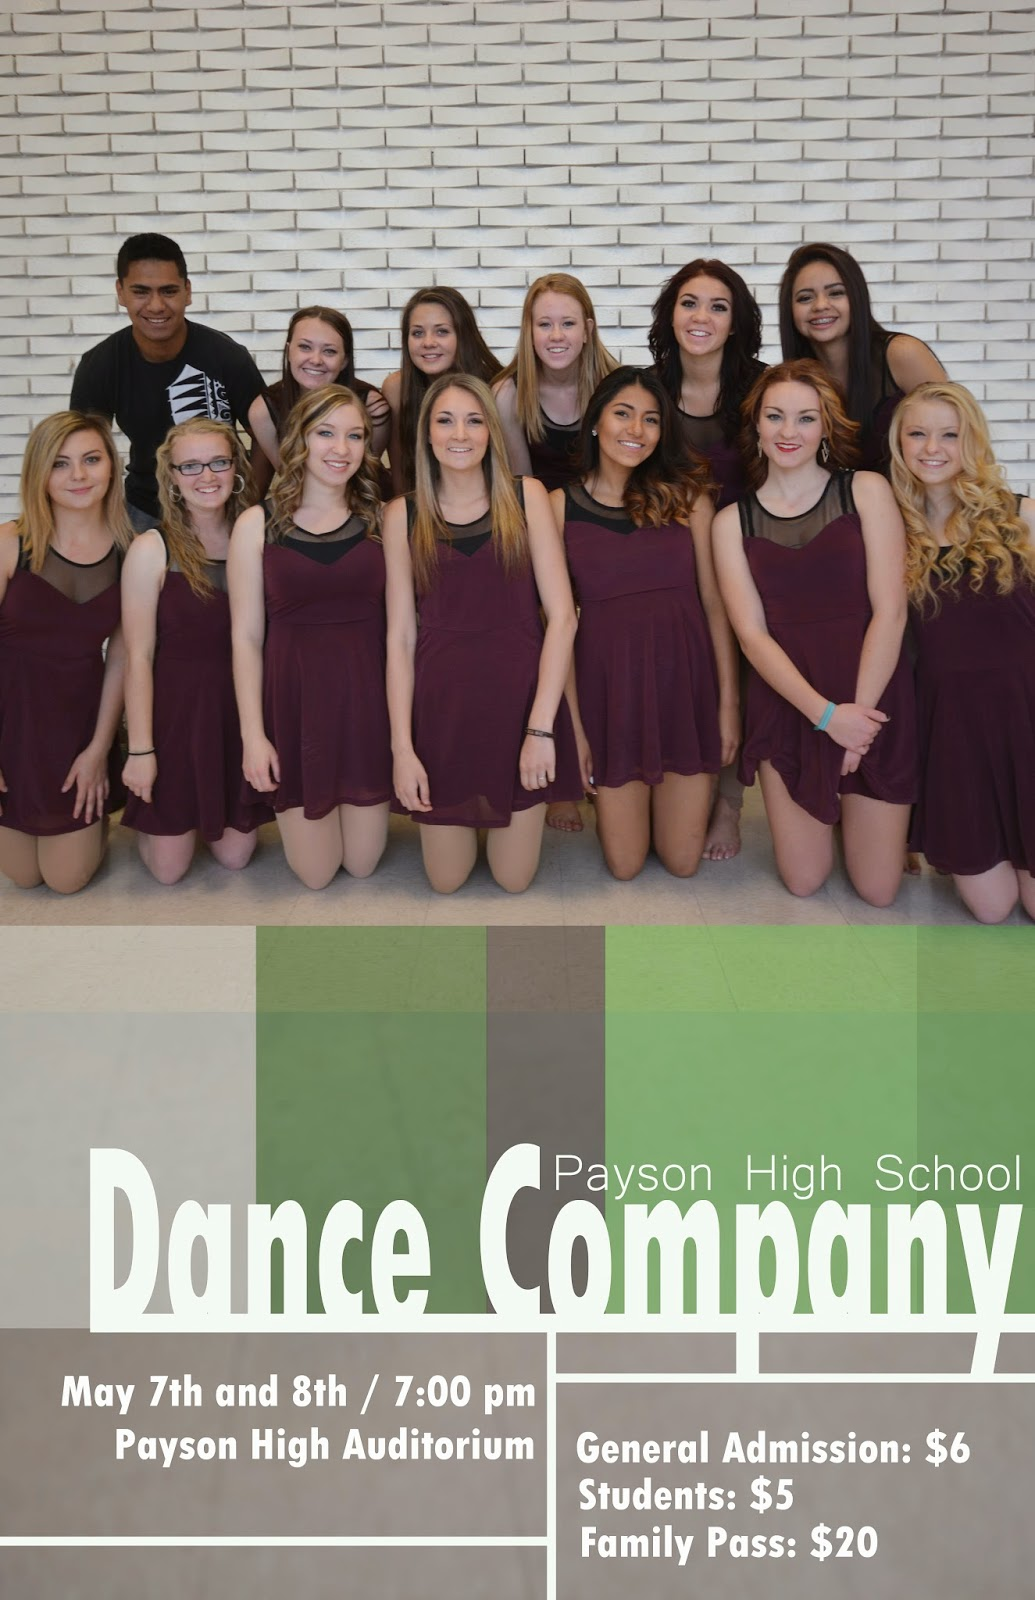 Payson High School Dance Company Spring Concert May 7 and 8